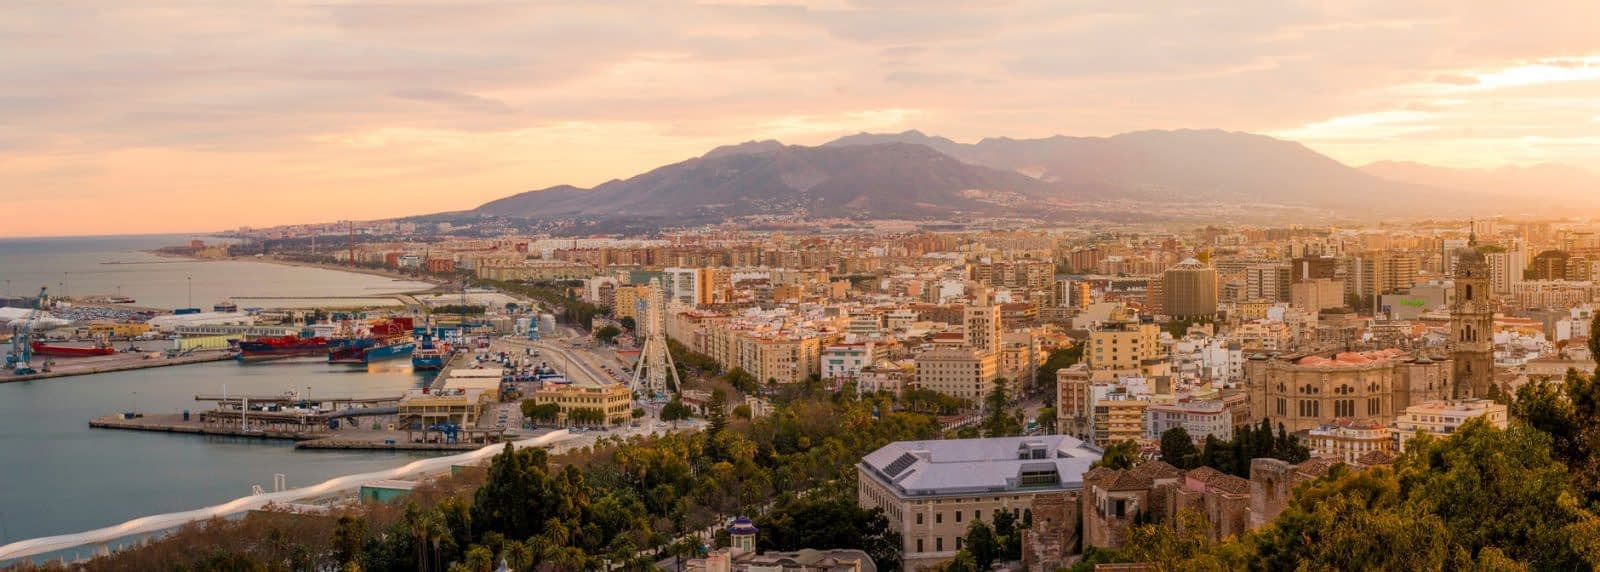 Malaga Weekend Guide: What to See and Do 1